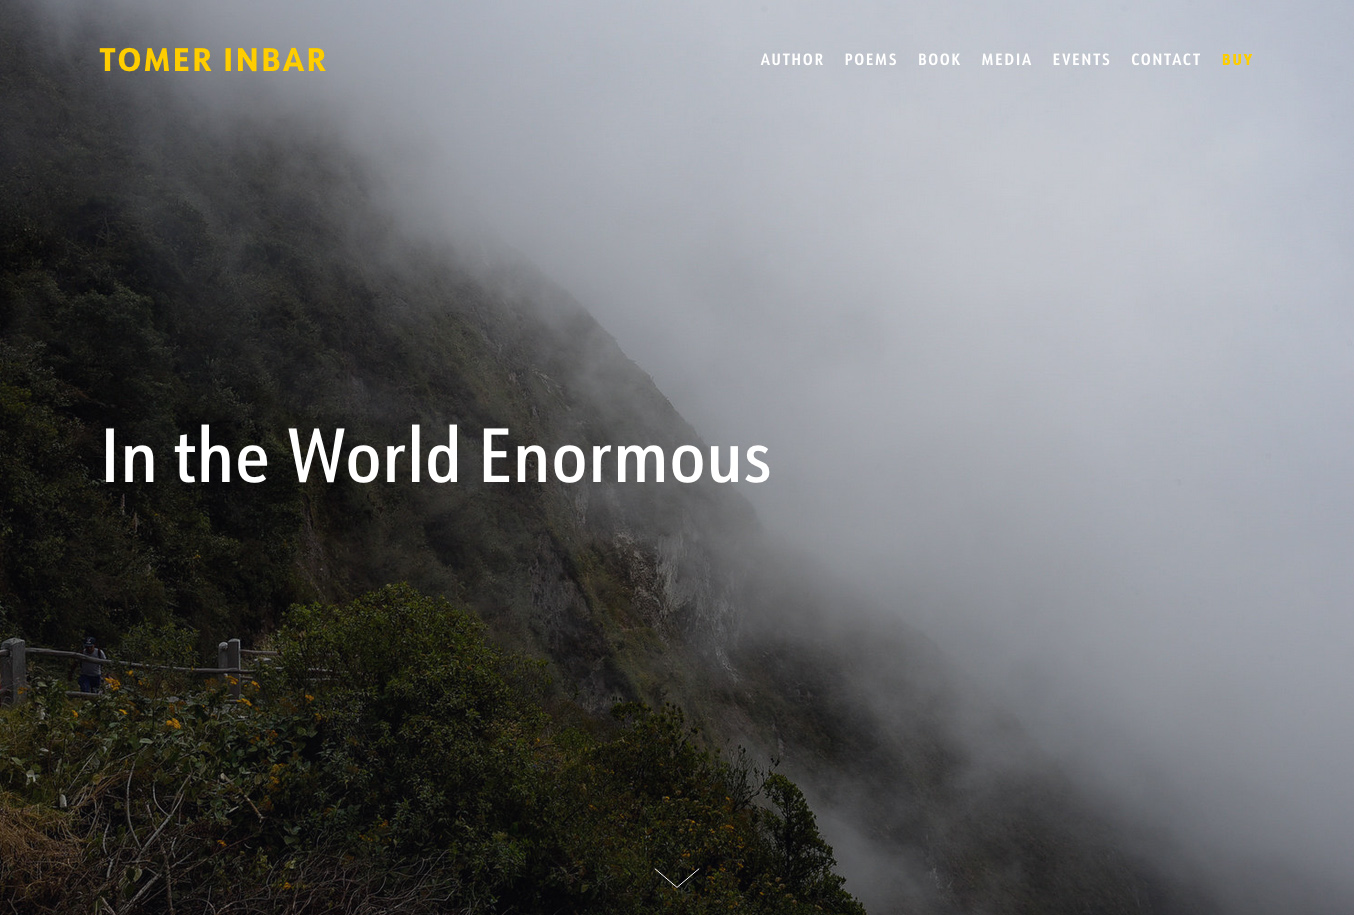 Website for the poetry collection In the World Enormous by Tomer Inbar.